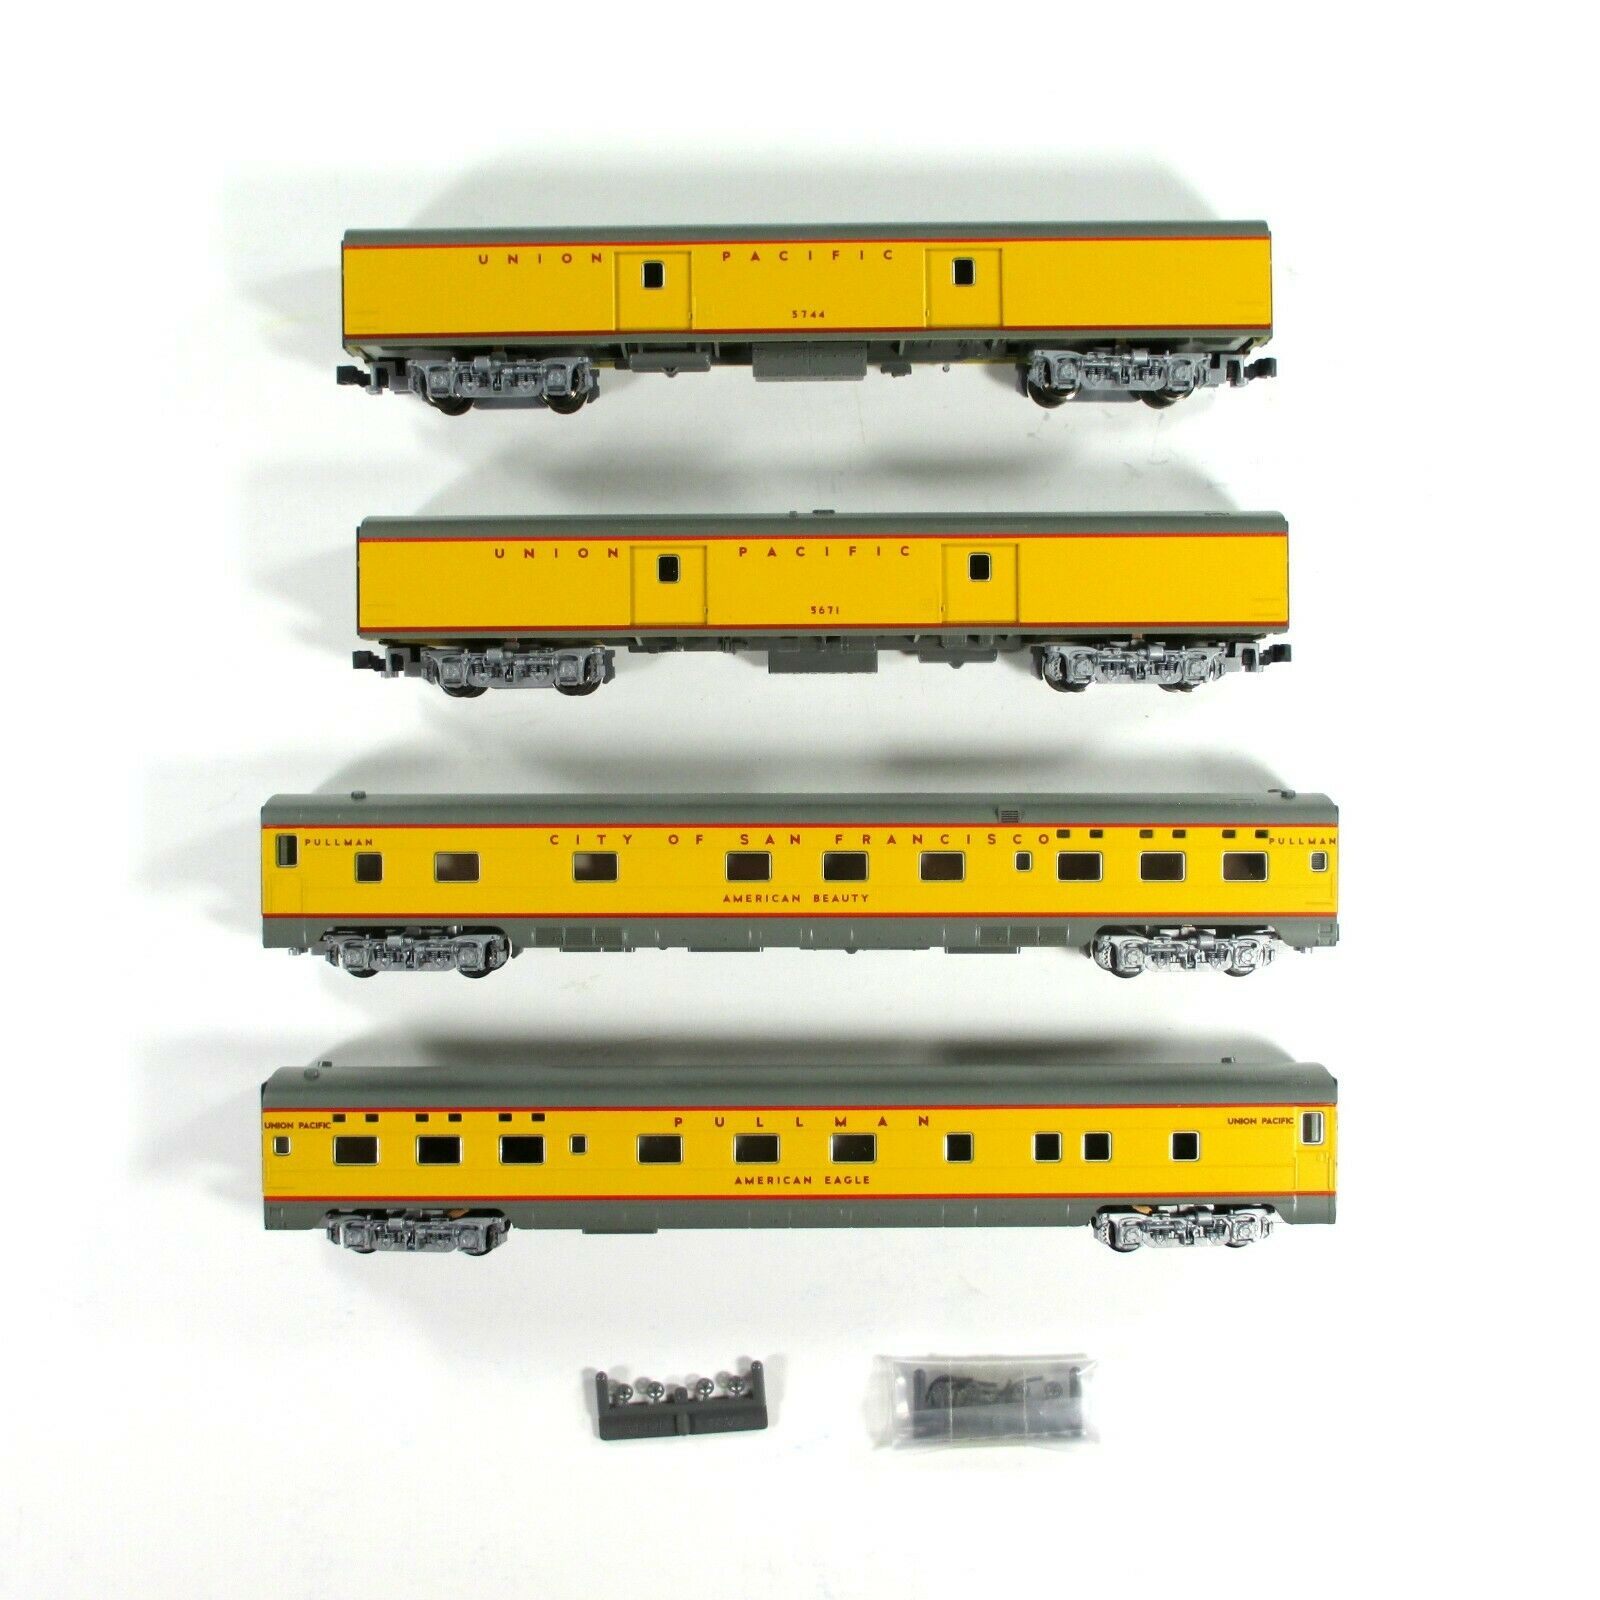 N Scale - Kato USA - 106-5011 - Union Pacific Streamliner Passenger Car 4-Car Set A - Union Pacific - 5744, 5671, American Eagle, American Beauty